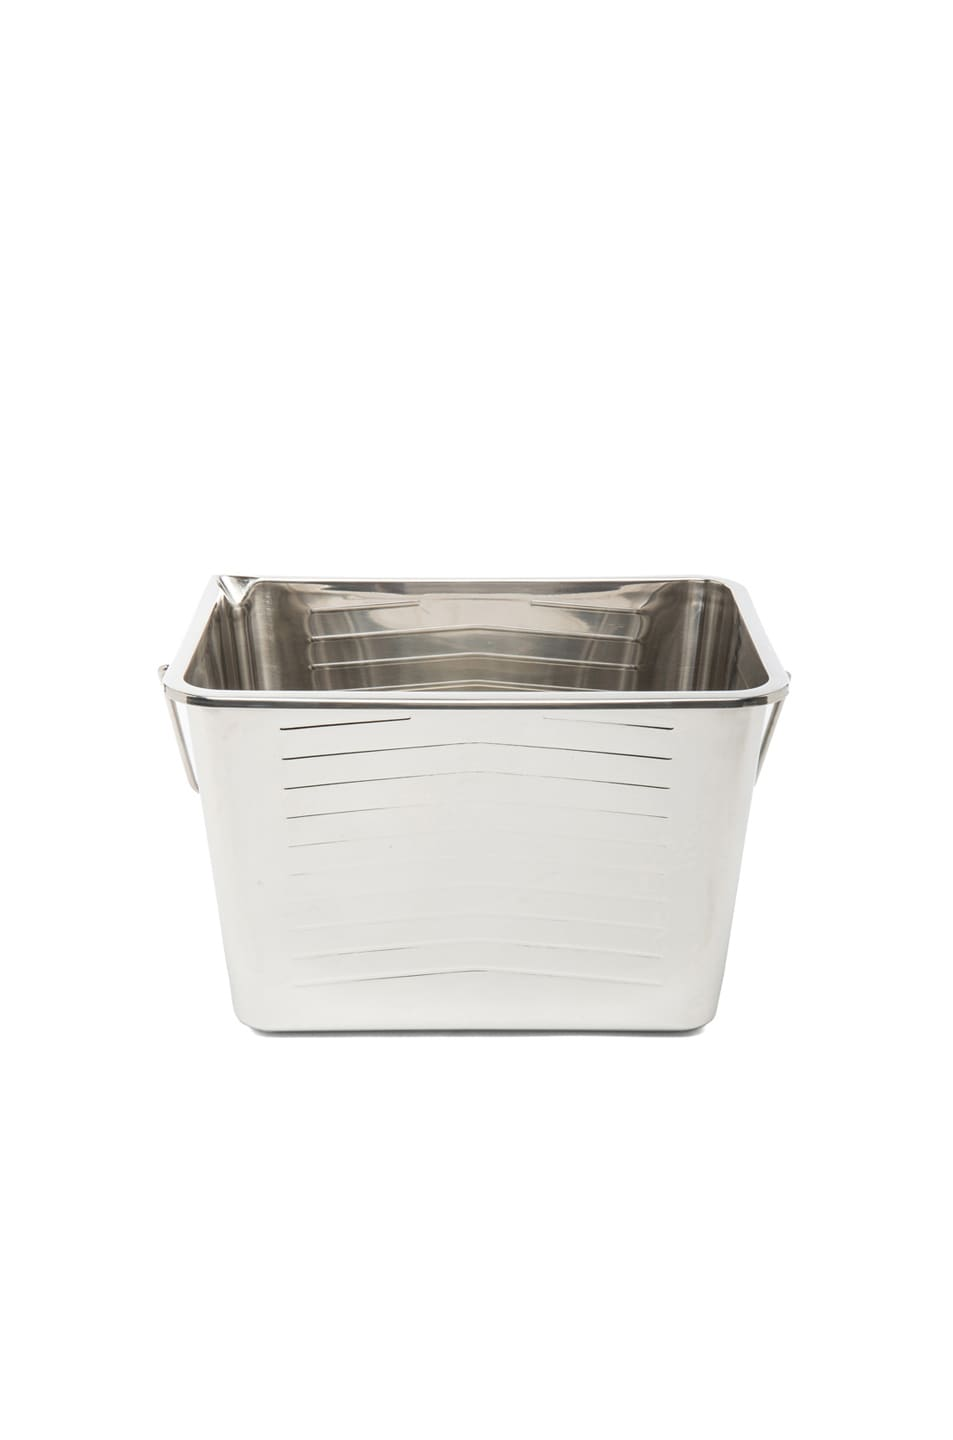 Image 2 of Maison Margiela Champagne Bucket in Silver